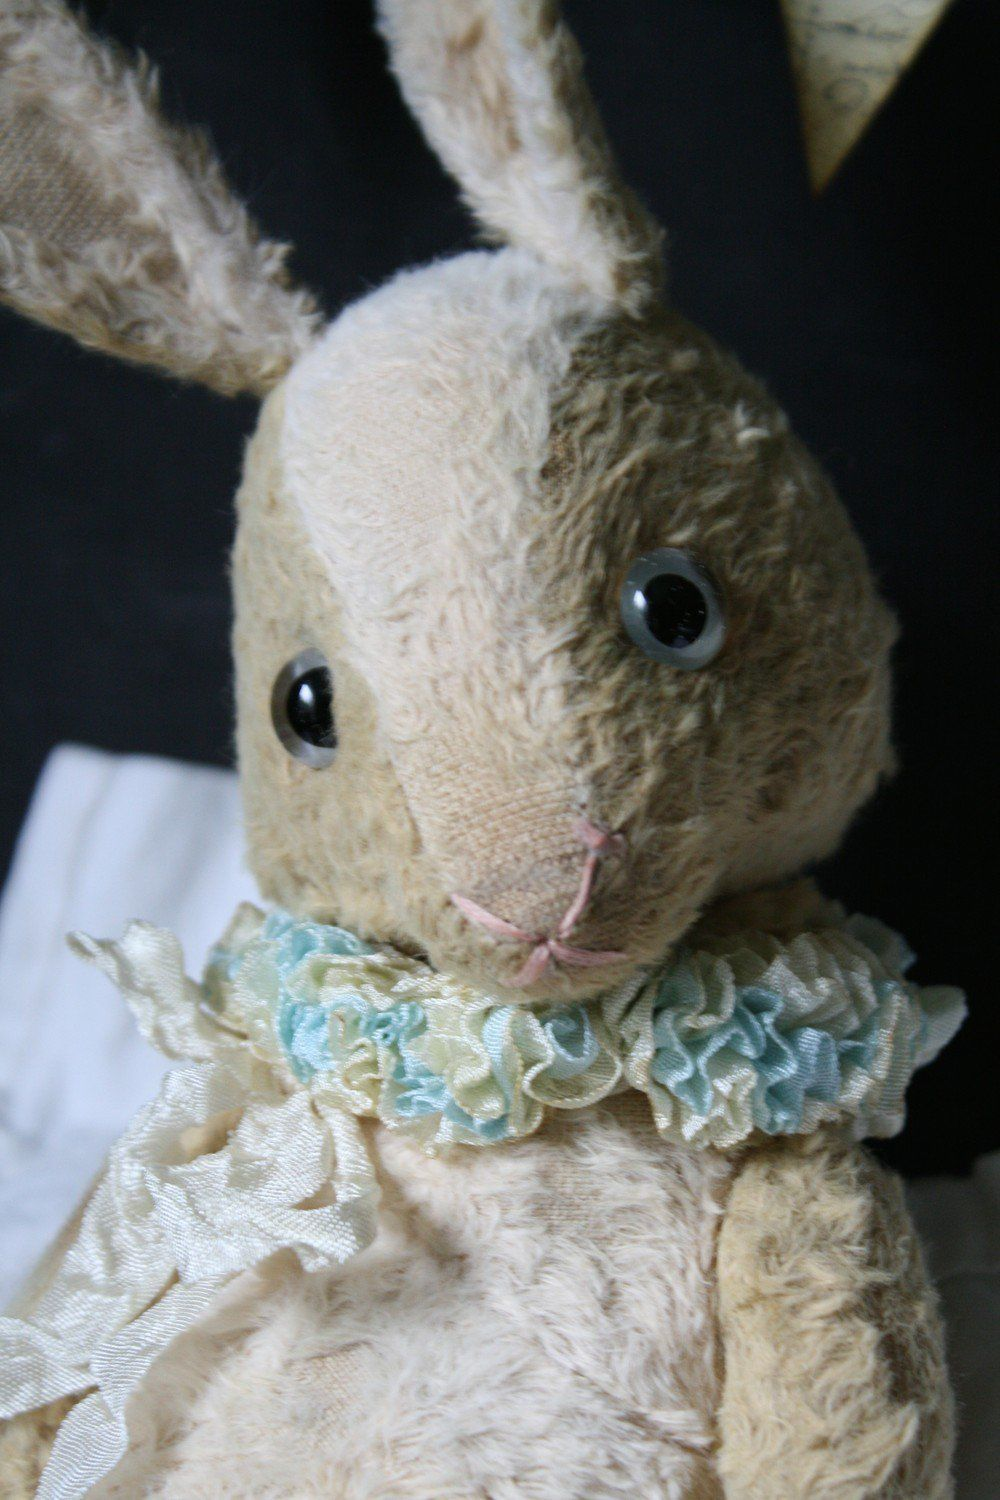 Hug Me Again collectible Blue eyed rabbit by V. Galli. via Hug Me Again Collectibles. Click on the image to see more!